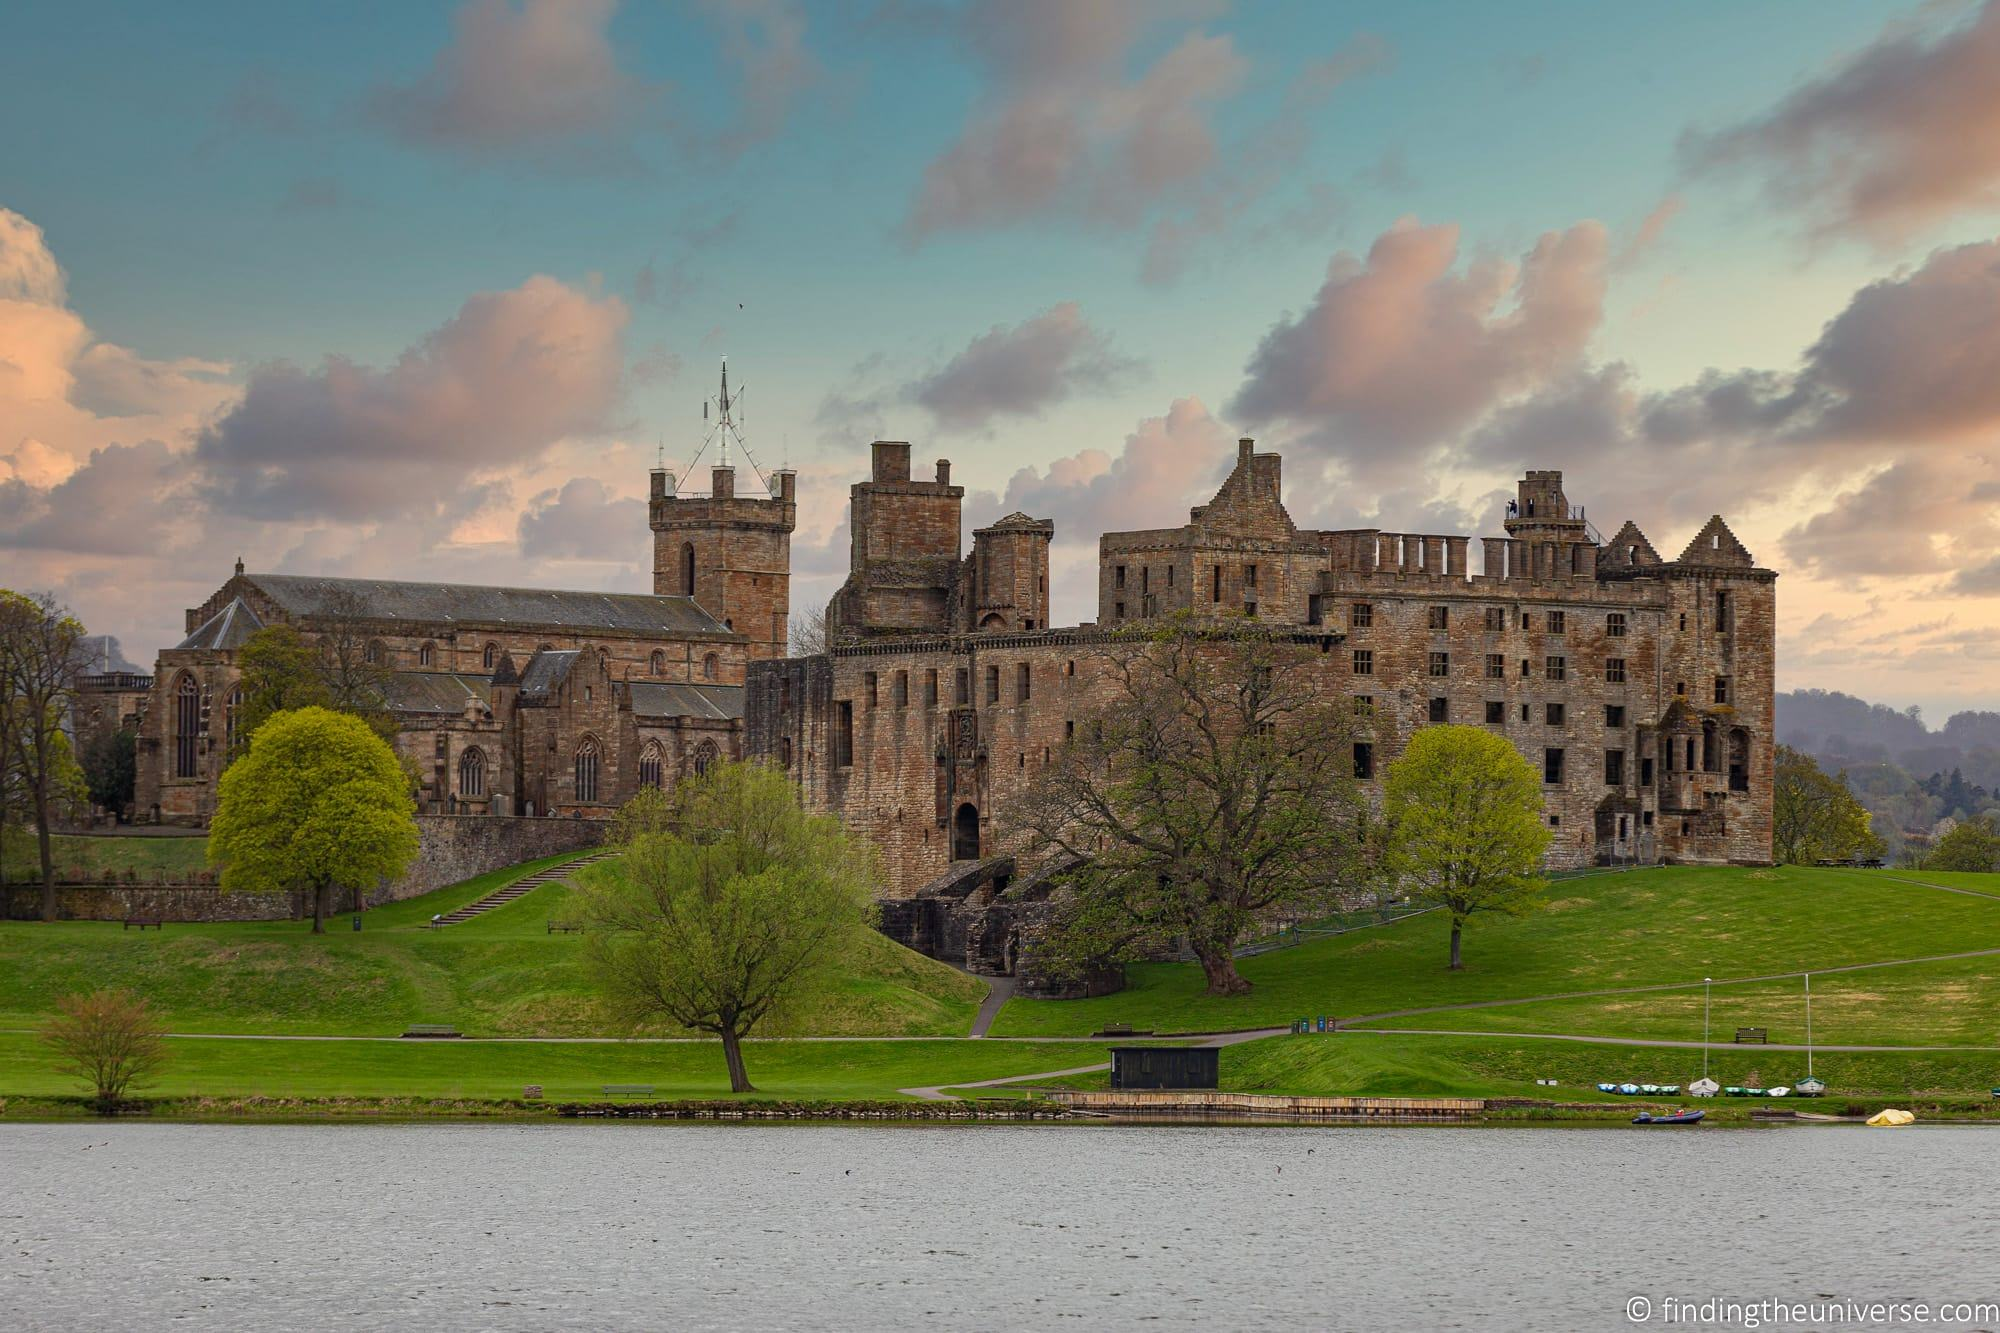 Outlander Filming Location – Linlithgow Palace